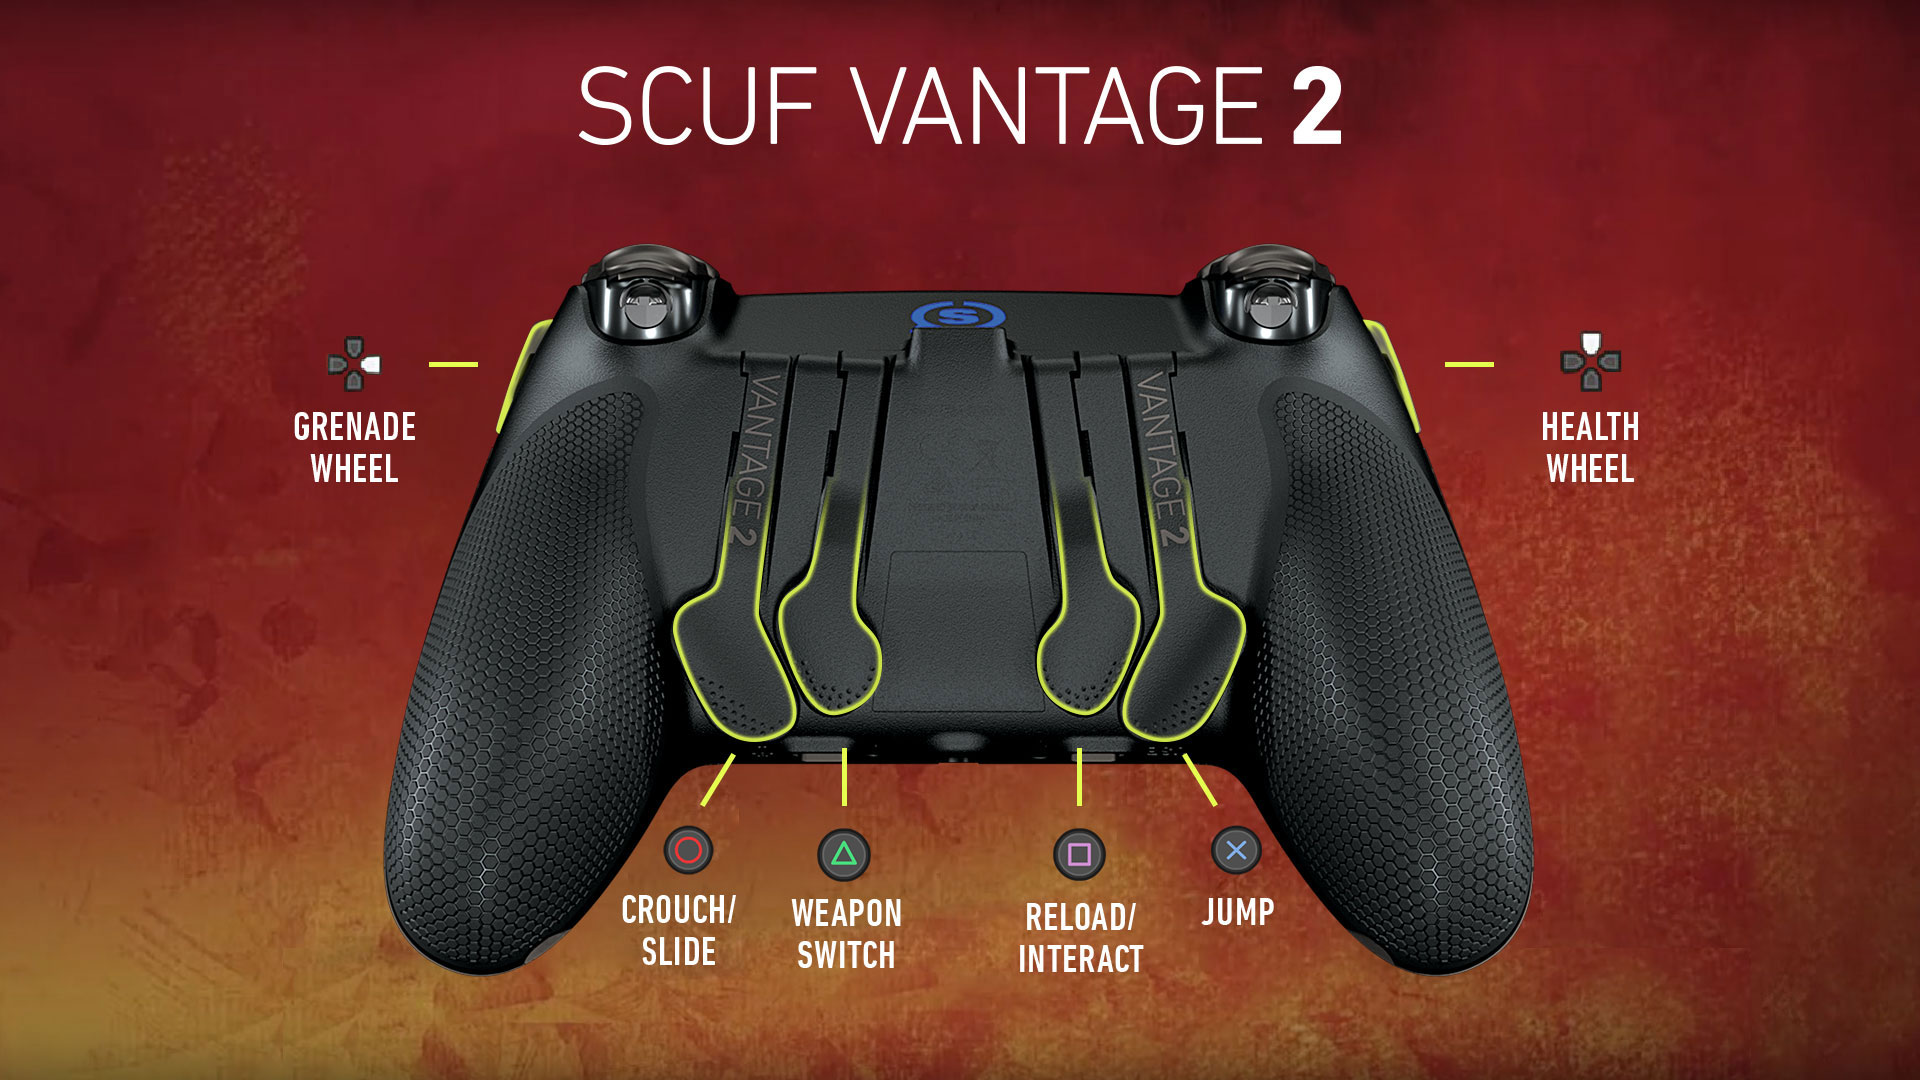 SCUF Vantage 2 Apex Legends PS4 Controller Set Up